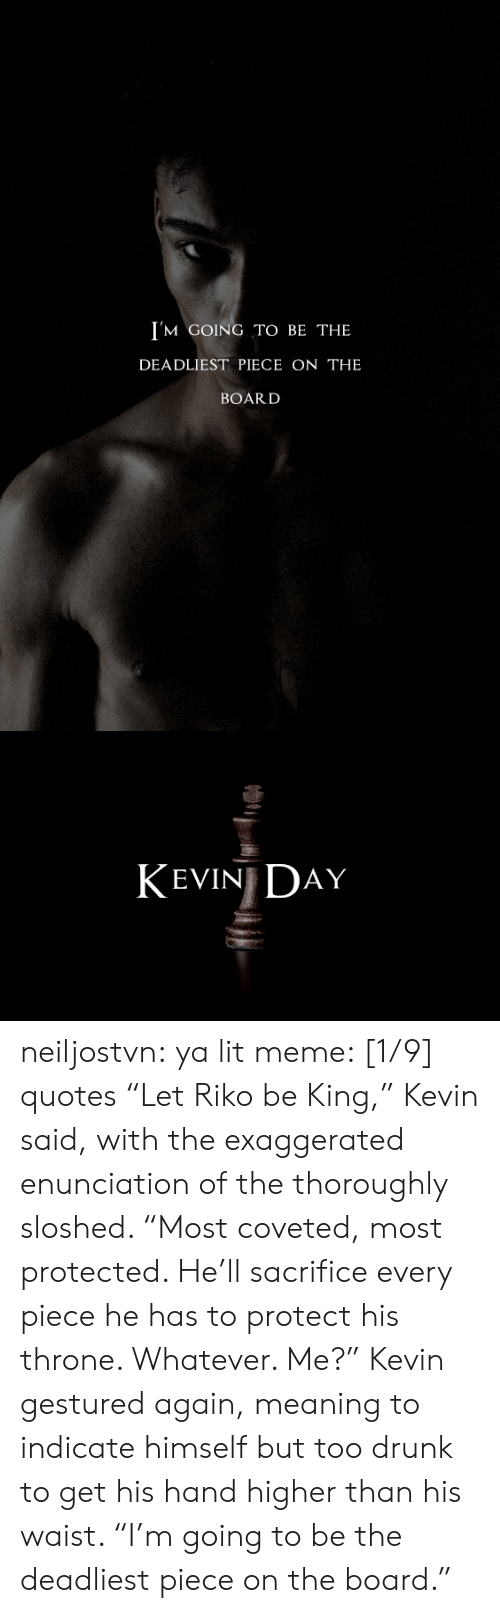 """Higher: I'M GOING TO BE THE  DEADLIEST PIECE ON THE  BOARD   KEVIN DAY neiljostvn:  ya lit meme: [1/9] quotes   """"Let Riko be King,"""" Kevin said, with the exaggerated enunciation of the thoroughly sloshed. """"Most coveted, most protected. He'll sacrifice every piece he has to protect his throne. Whatever. Me?"""" Kevin gestured again, meaning to indicate himself but too drunk to get his hand higher than his waist. """"I'm going to be the deadliest piece on the board."""""""